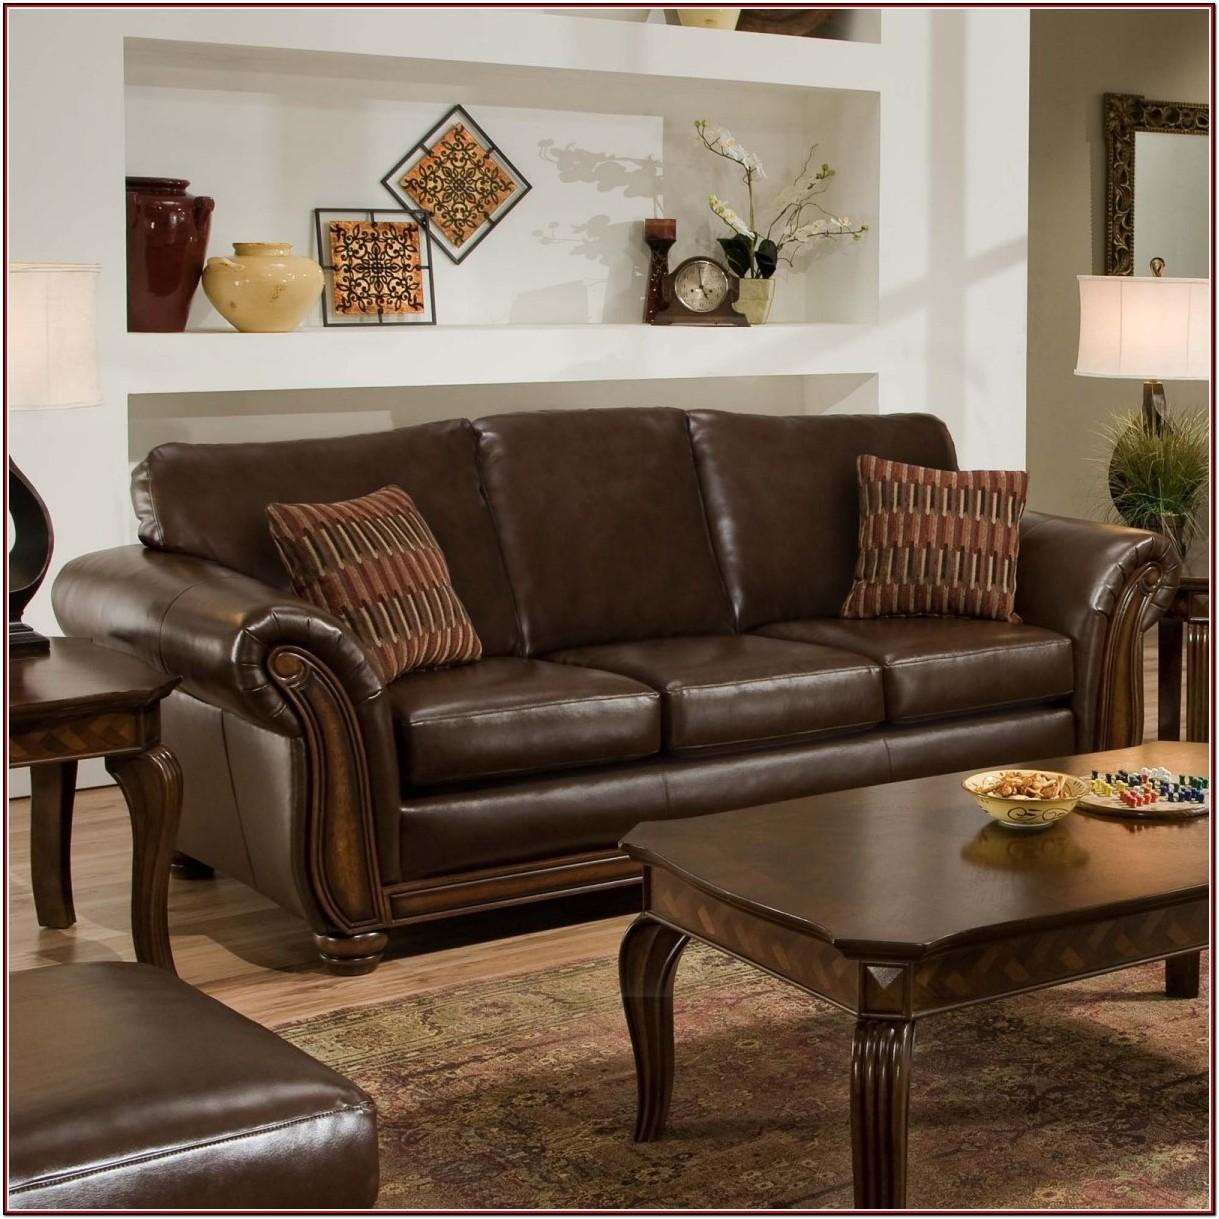 Brown Leather Couch In Living Room